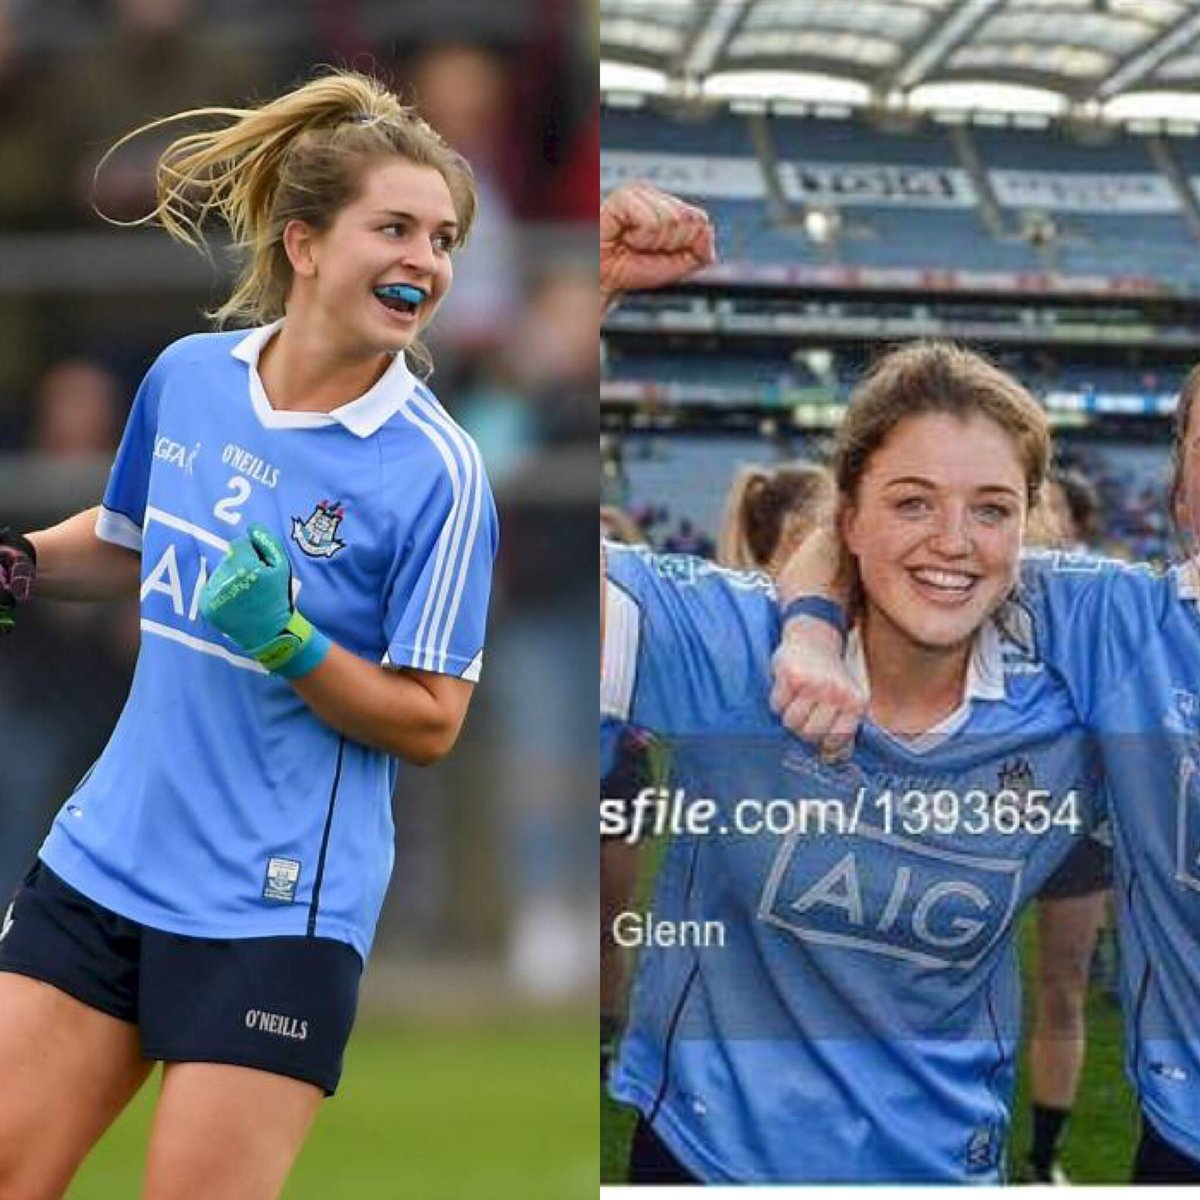 Ucd Gaa Club On Twitter Good Luck To Ucd Students Martha Byrne And Tarah O Sullivan Who Take On Westmeath In The Leinster Senior Ladies Final With Dublinladiesg Https T Co Ql3mgxcqvk